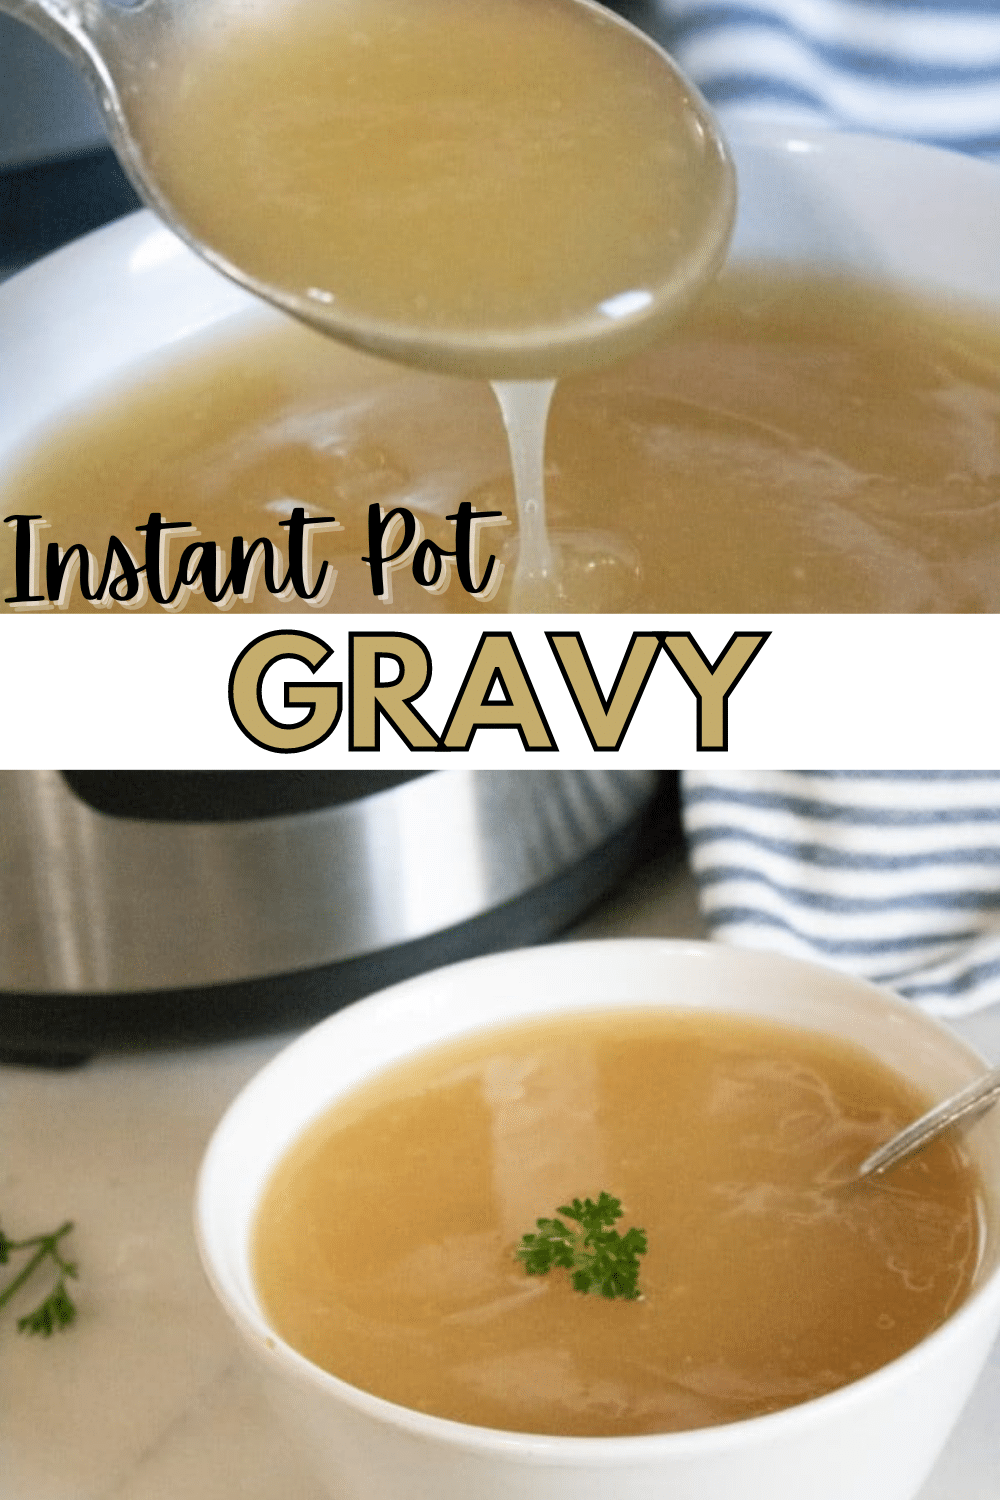 Two great reasons to make Instant Pot Gravy -- fewer dirty dishes + gravy stays warms until you're ready to serve it! #Thanksgiving #InstantPot #recipes #gravy via @wondermomwannab